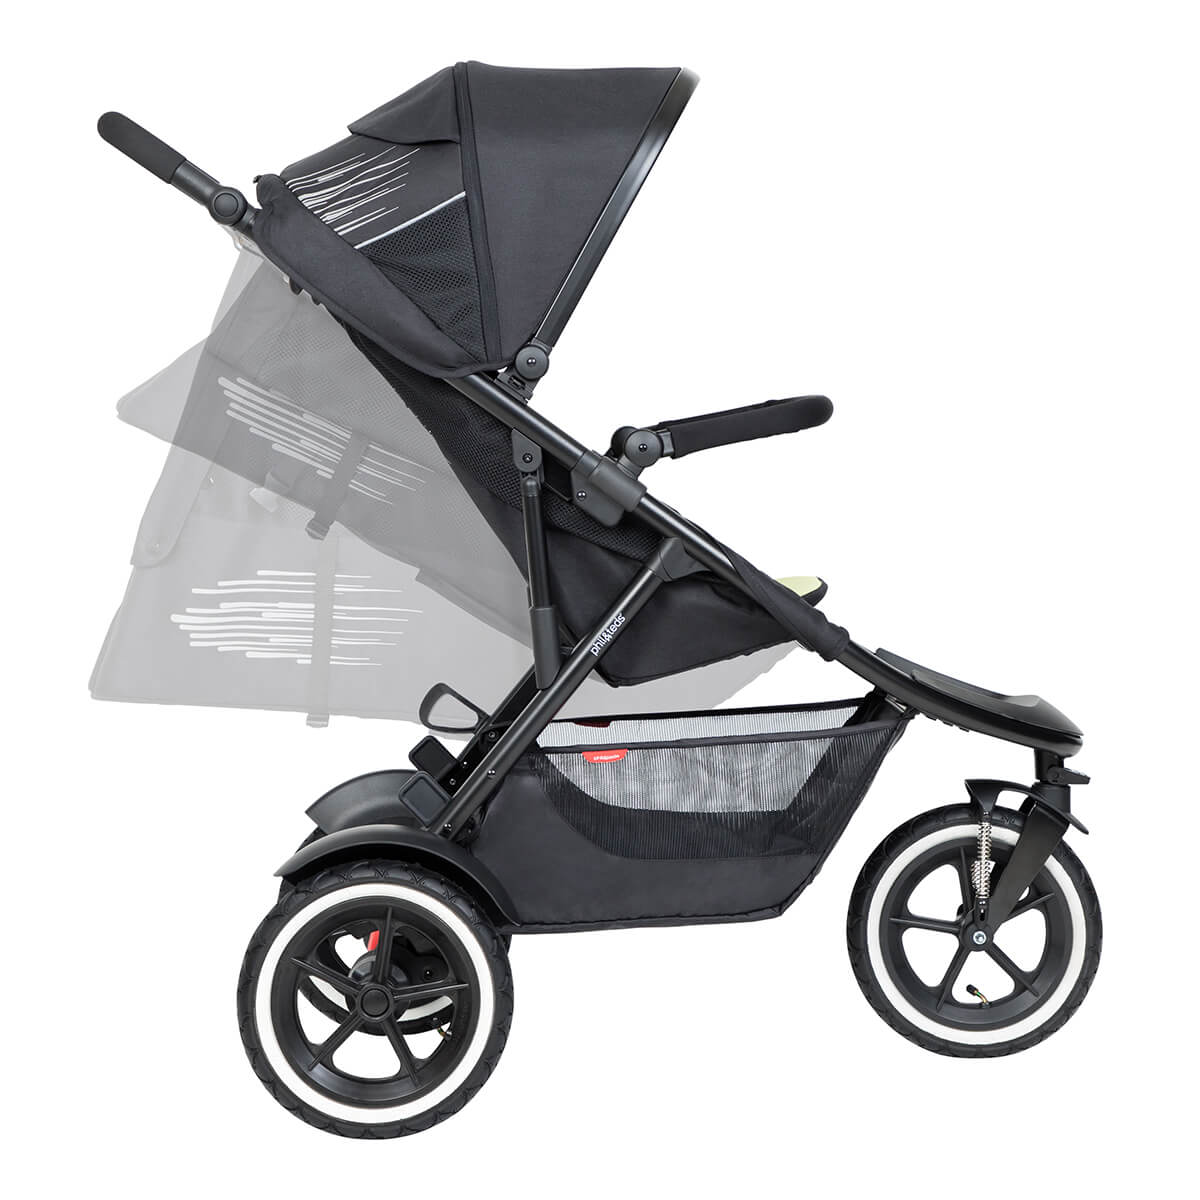 https://cdn.accentuate.io/4509901848653/19466203824322/philteds-sport-buggy-can-recline-in-multiple-angles-including-full-recline-for-newborn-baby-v1626485413923.jpg?1200x1200